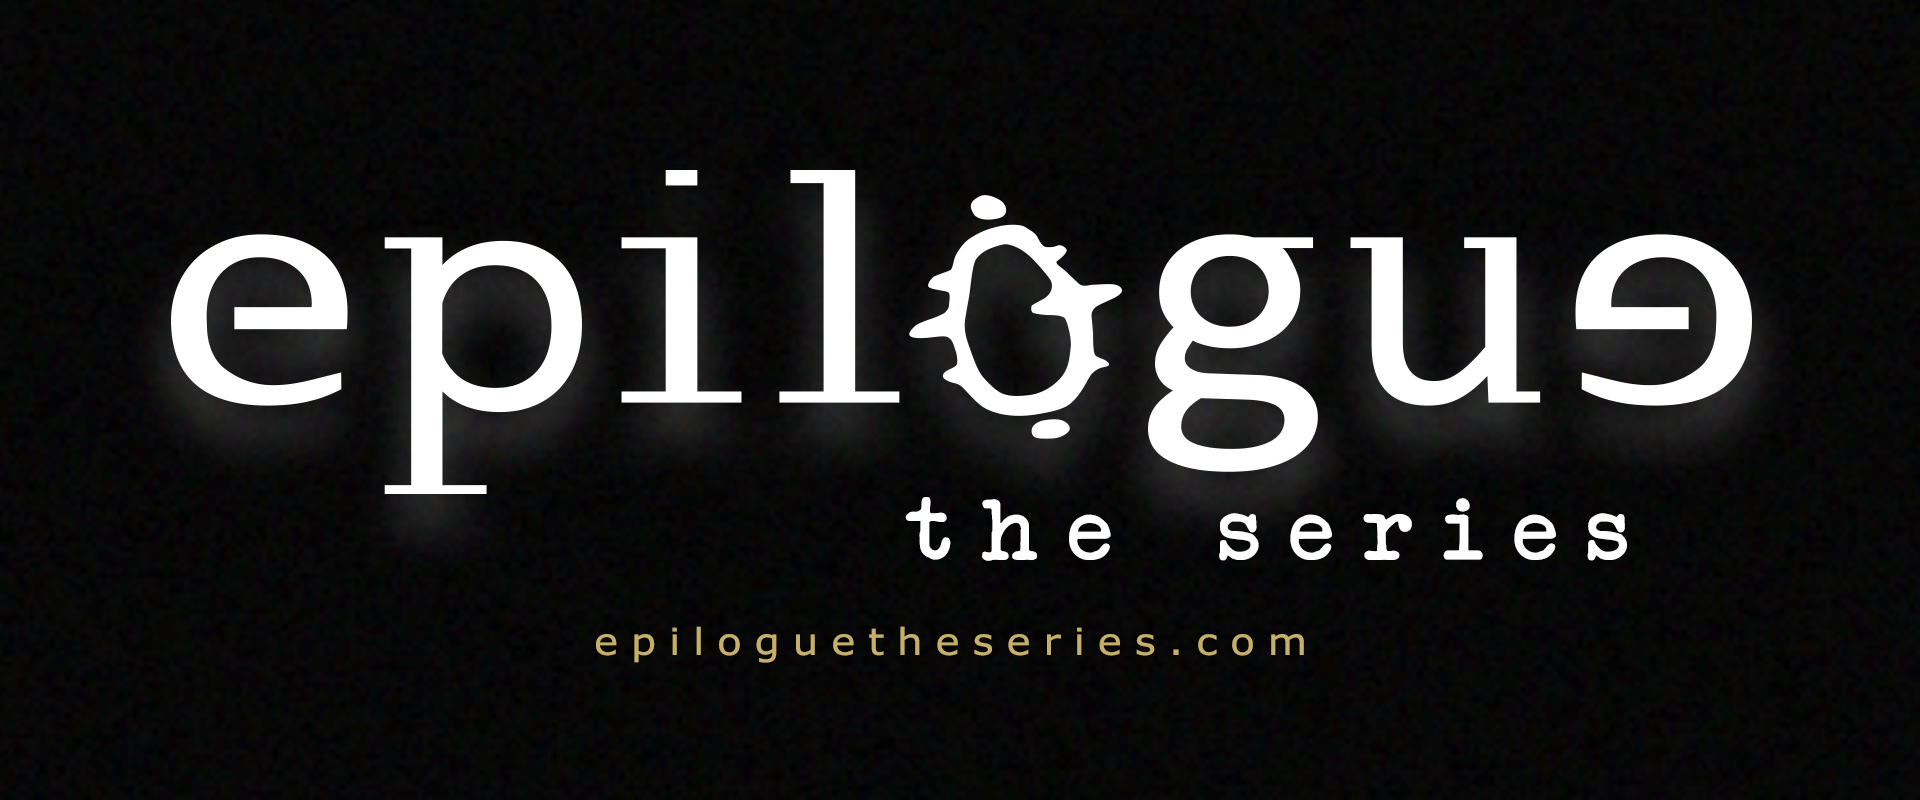 Epilogue Logo